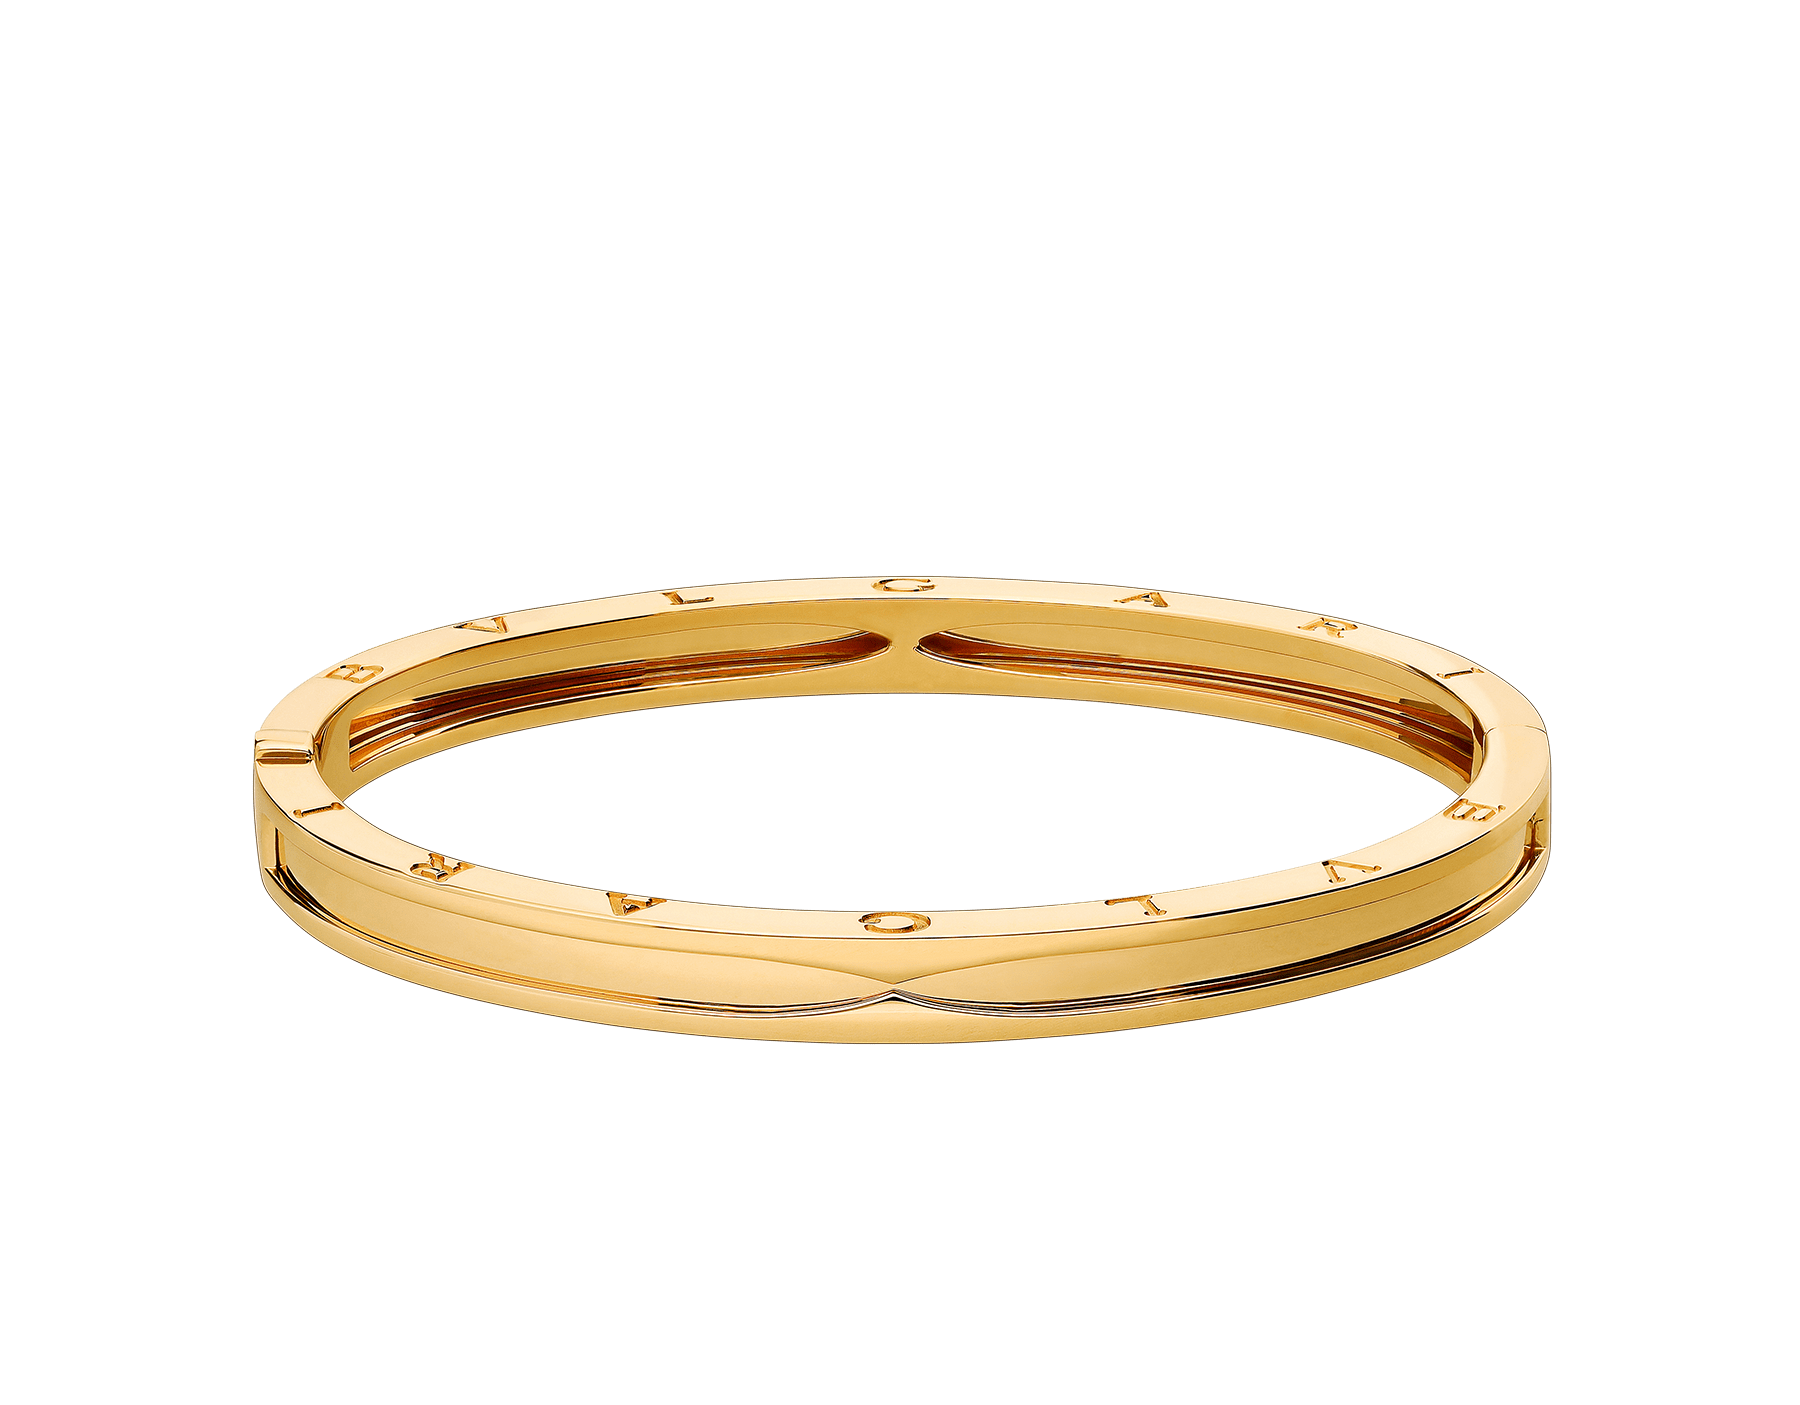 B.zero1 bangle bracelet in 18 kt yellow gold. BR857482 image 2